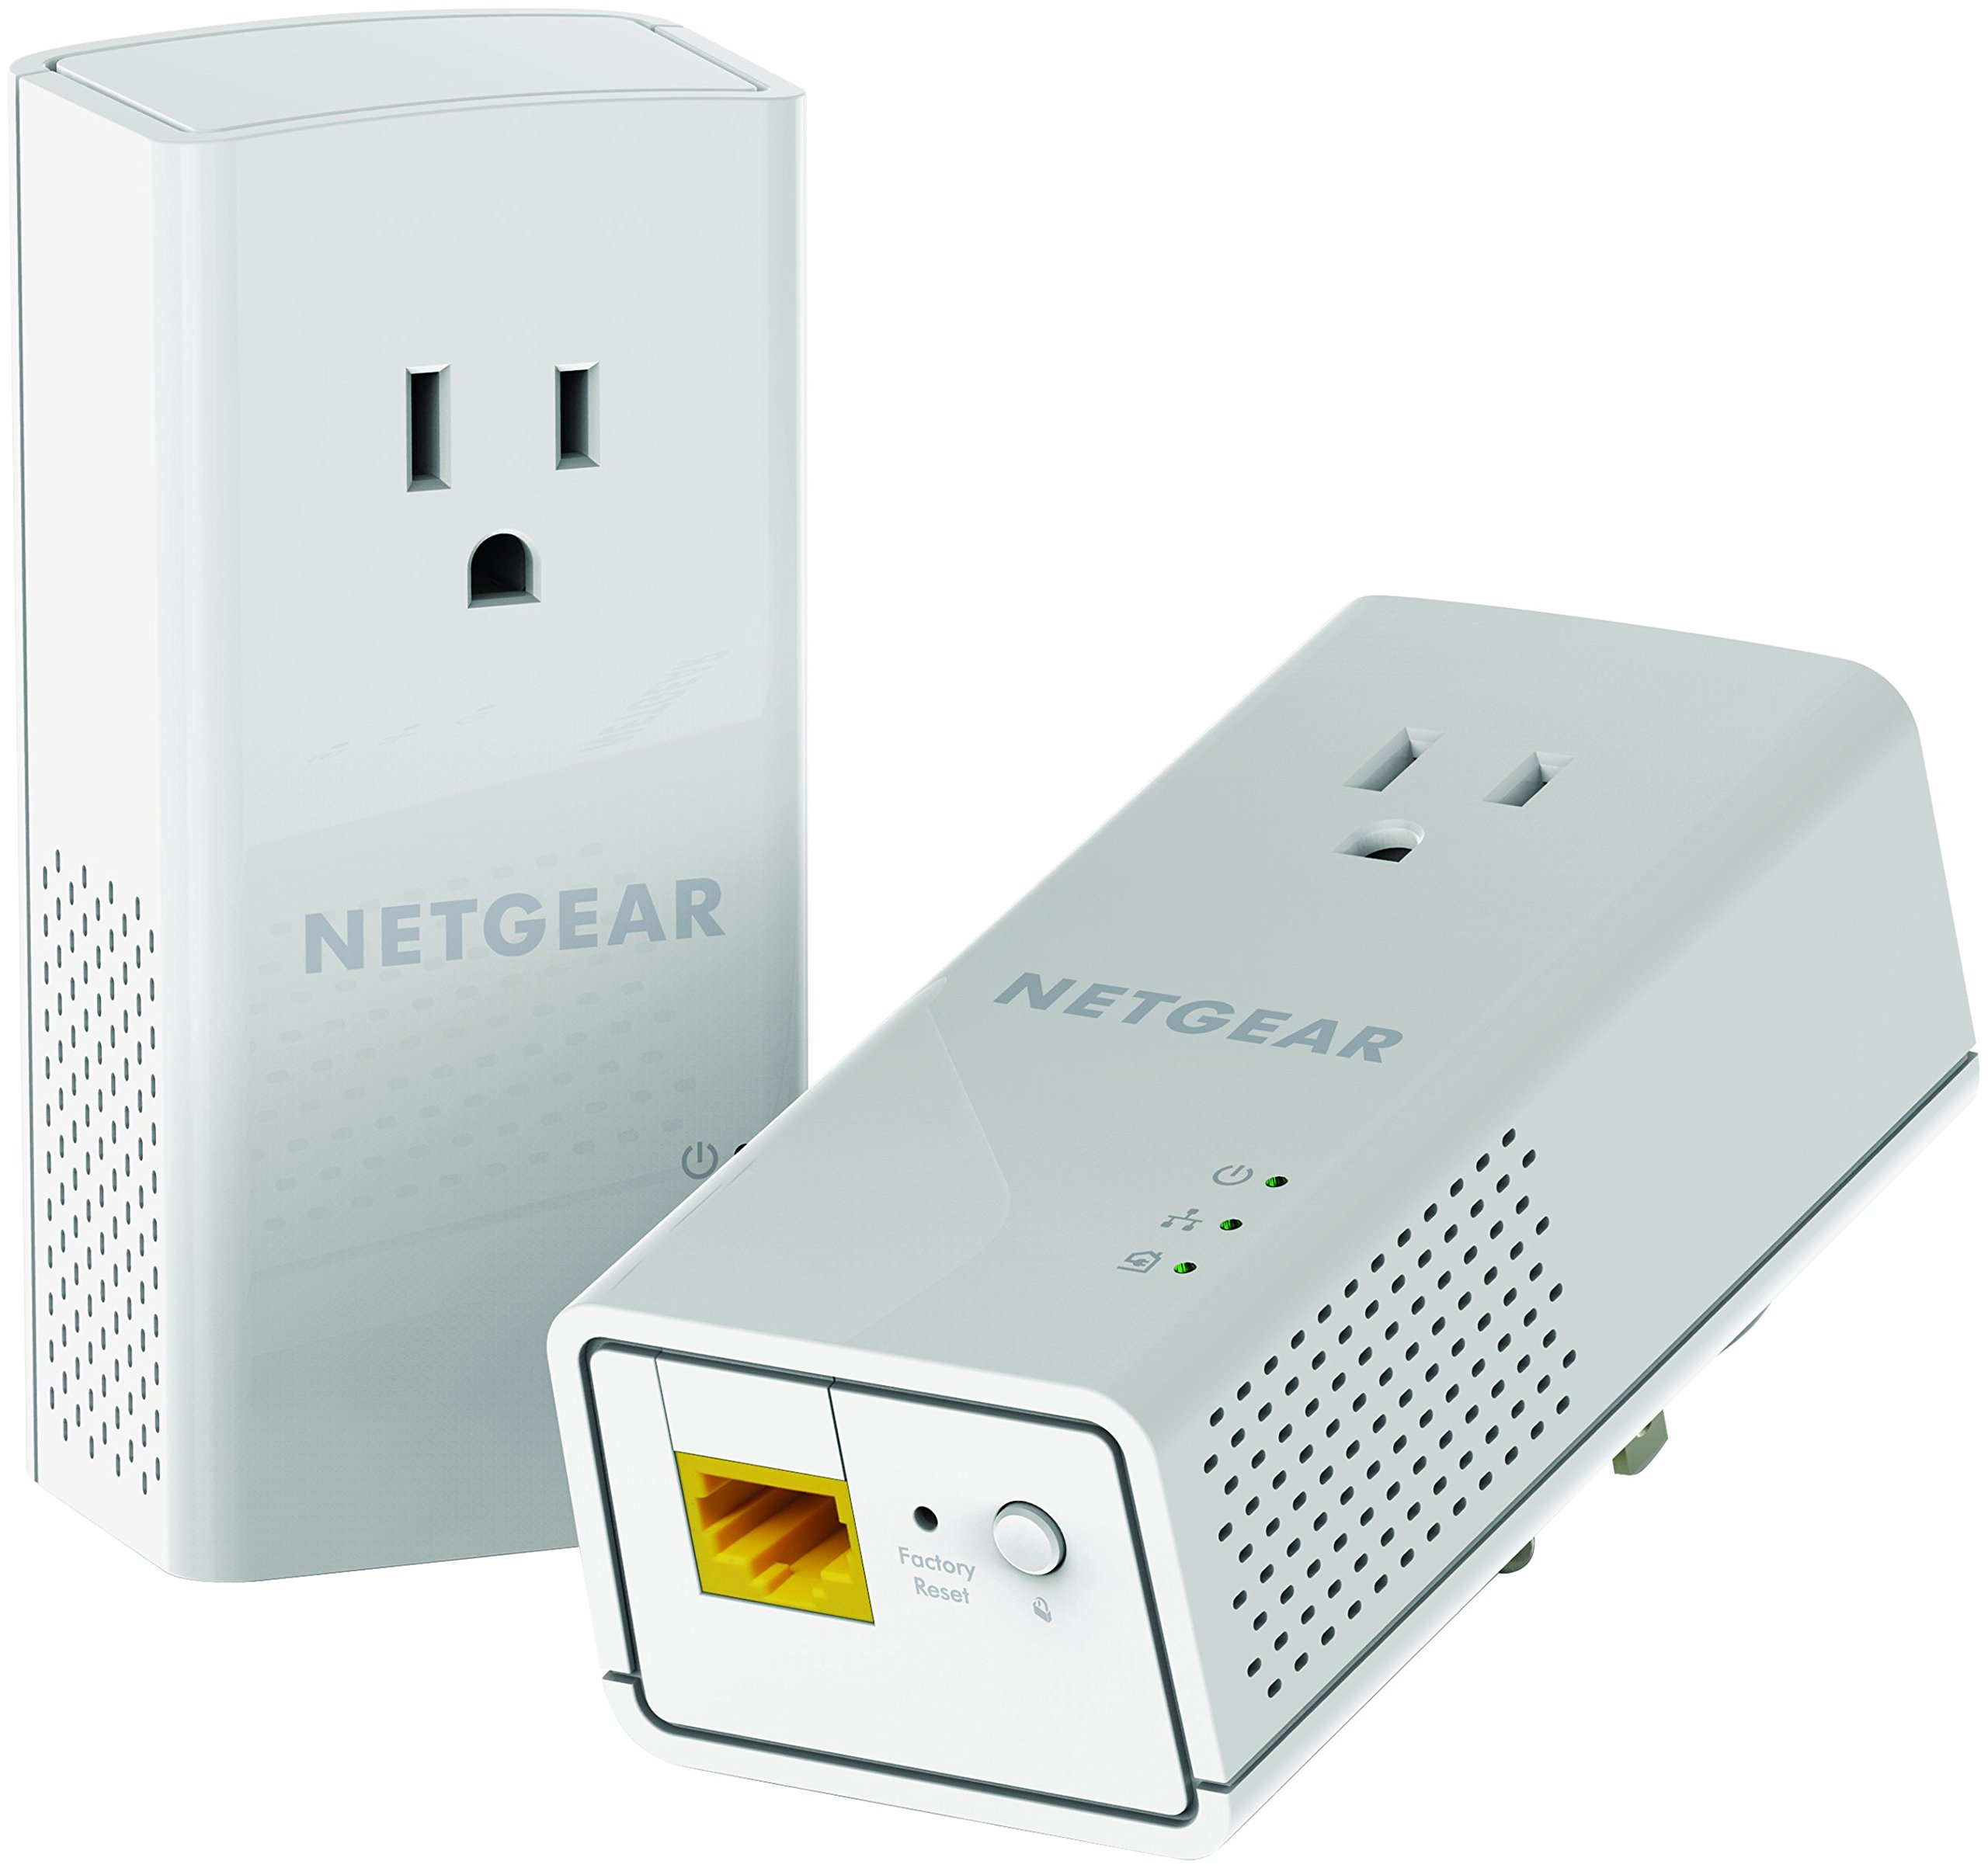 NETGEAR PowerLINE 1200 Mbps, 1 Gigabit Port with Pass-Through, Extra Outlet (PLP1200-100PAS) by NETGEAR